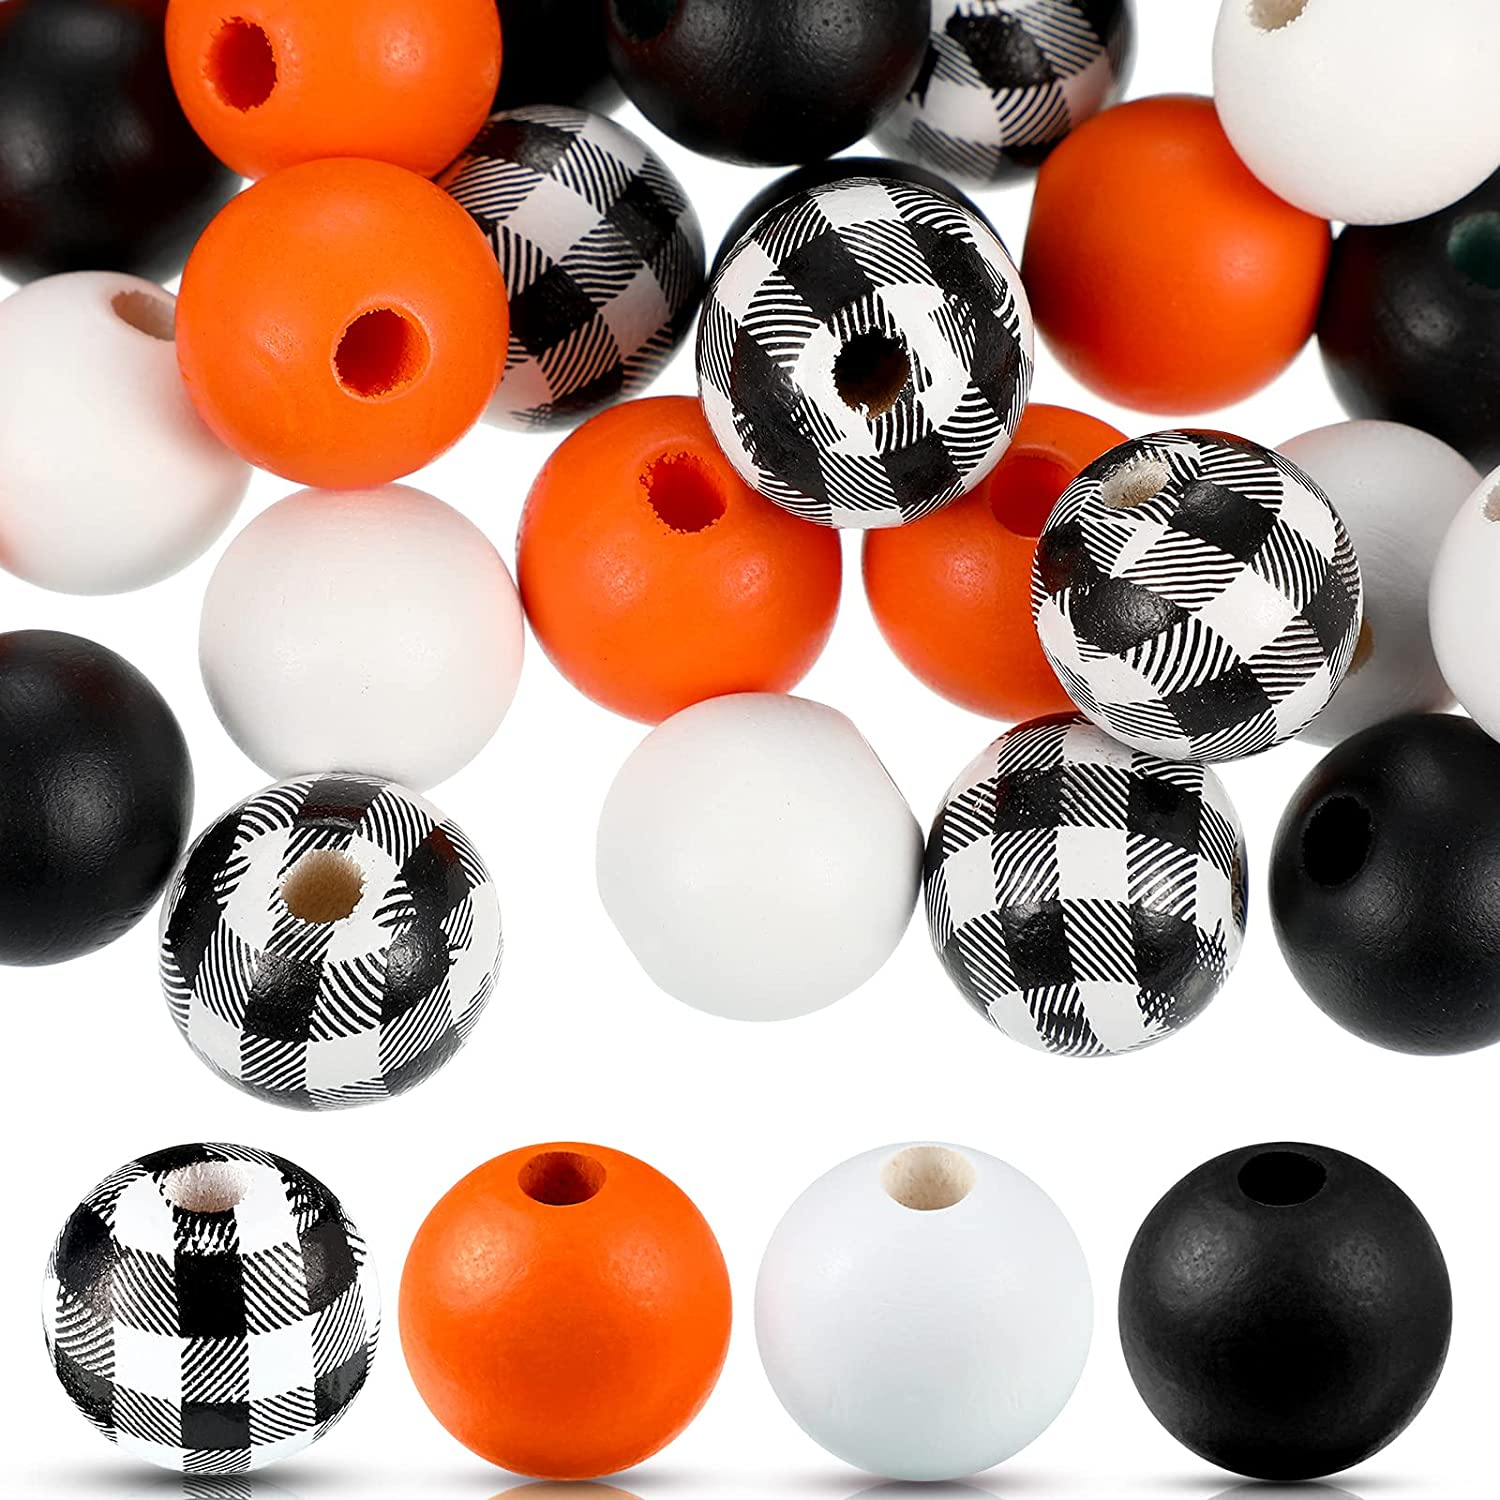 160 Pieces wholesale Craft Wood Beads Wooden sold out Plaid Christmas Hallowe